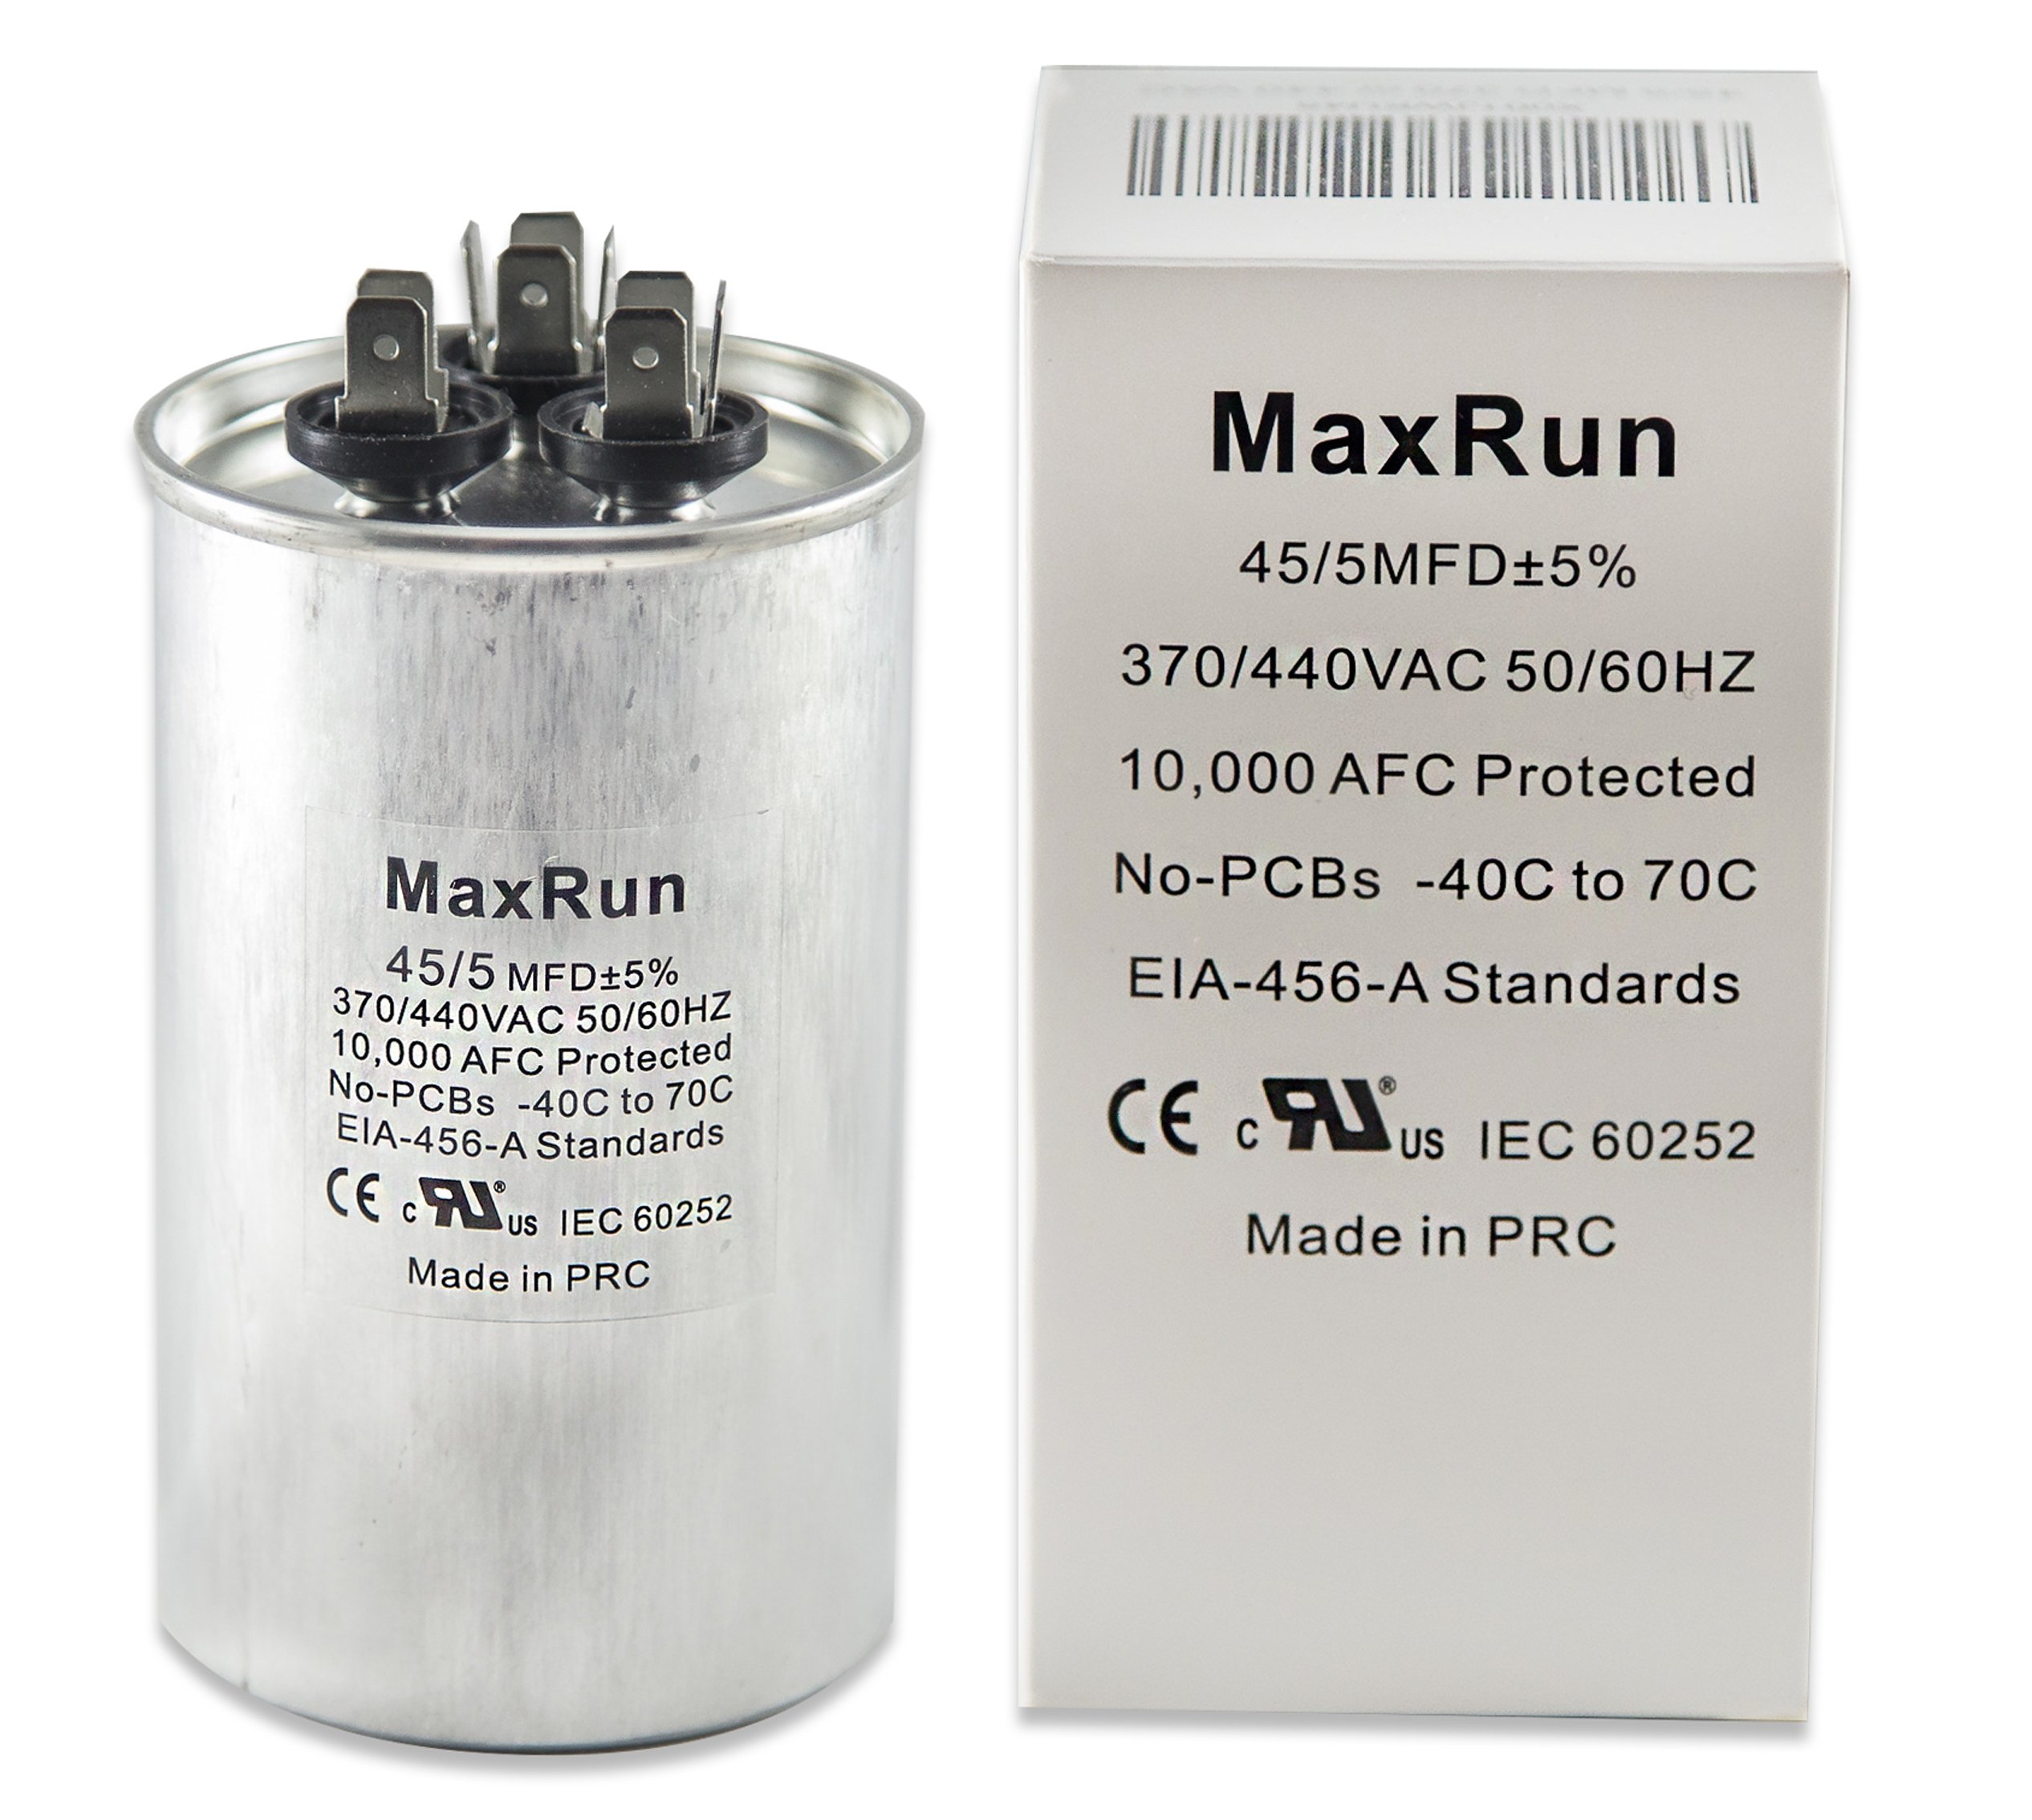 Buy CAPACITOR 45+5 MFD 370 VAC ROUND ONETRIP PARTS DIRECT